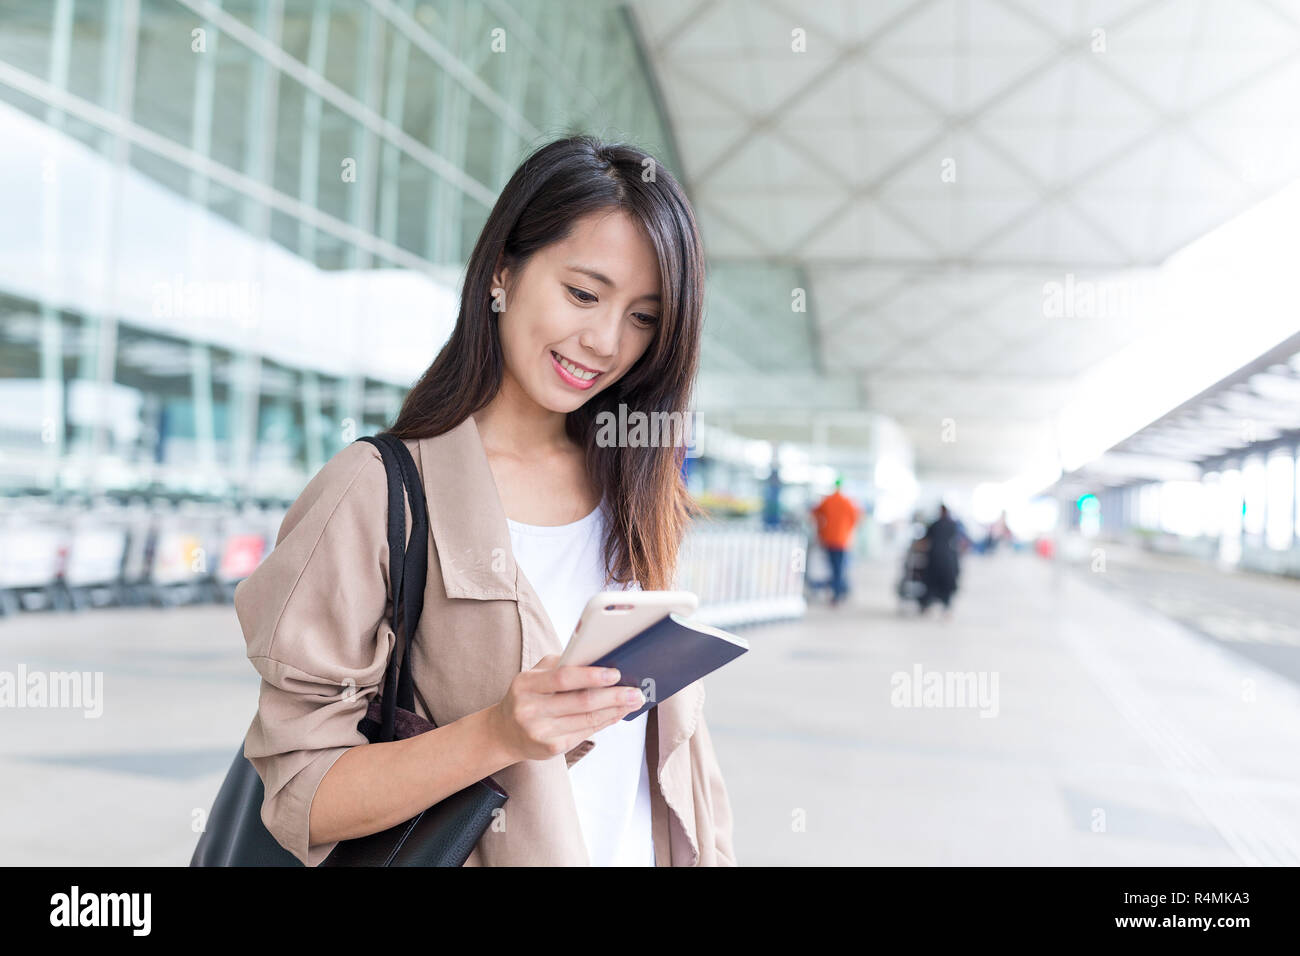 Woman looking at cellphone in Hong Kong airport - Stock Image